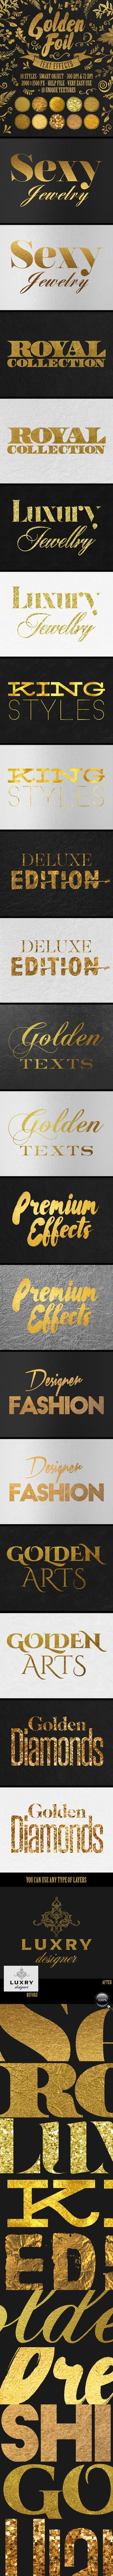 Gold Text Effects for Photoshop. Download here: http://graphicriver.net/item/gold-text-effects/14344277?ref=ksioks